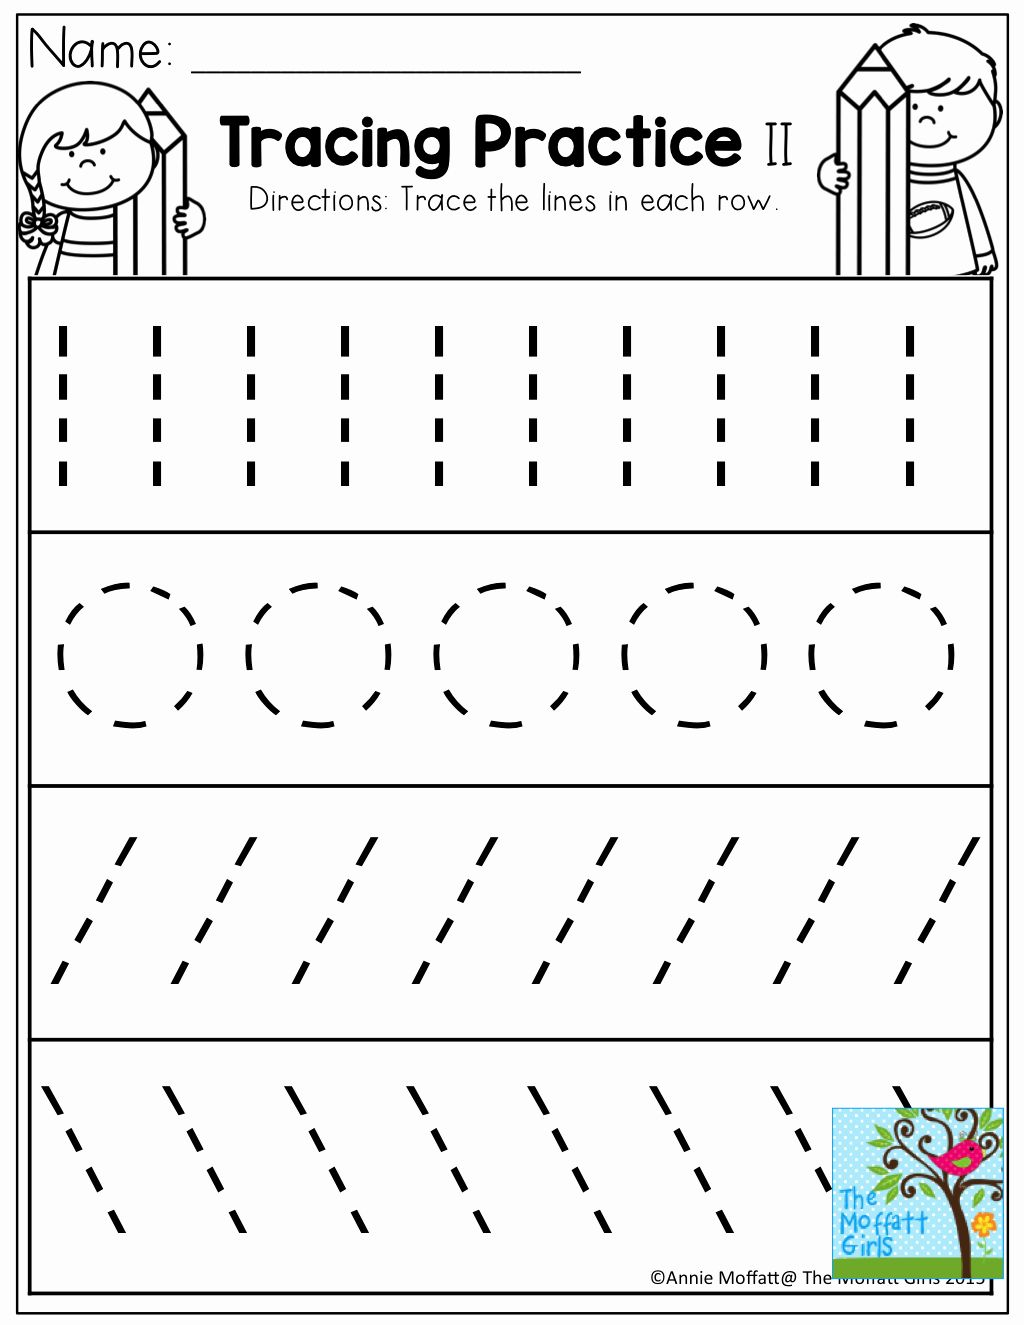 Alphabet Coloring Worksheets For 3 Year Olds New Tracing Practice Tons Of Printable For Pre K In 2020 Tracing Worksheets Preschool Preschool Writing Preschool Tracing